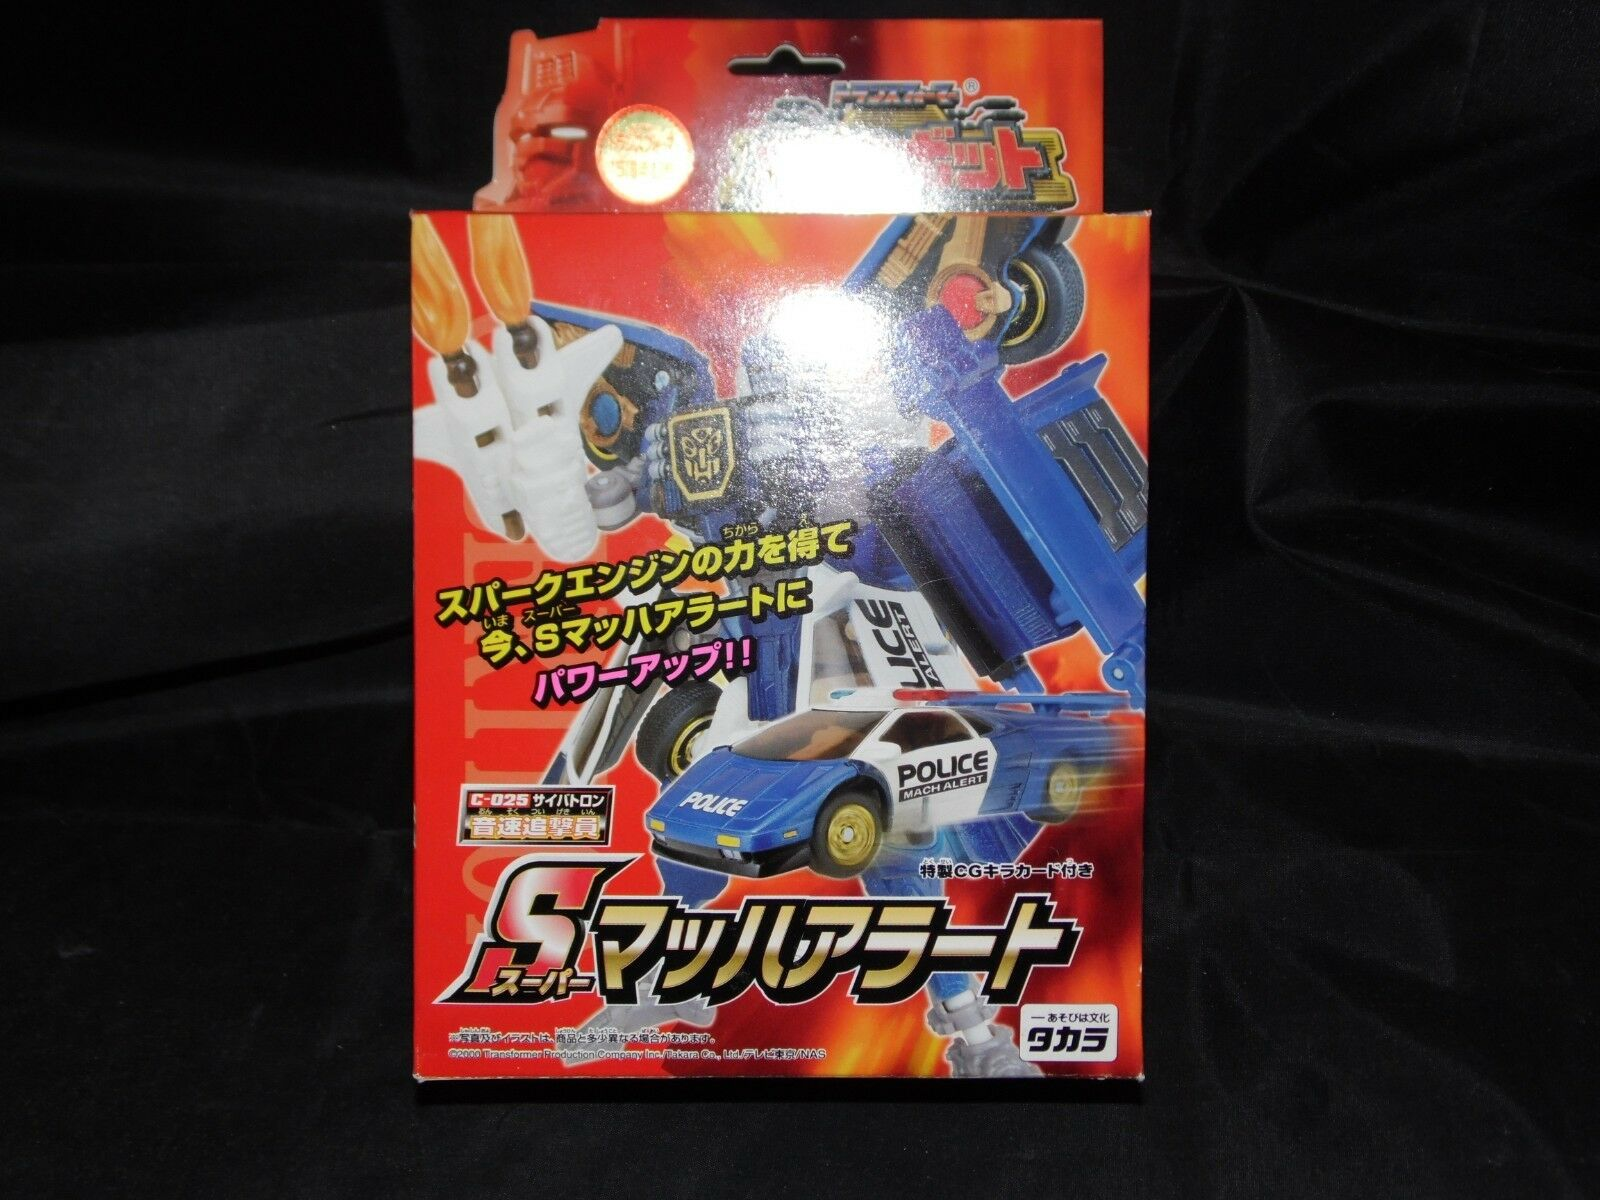 Takara Transformers Action Figure in box.  Prowl